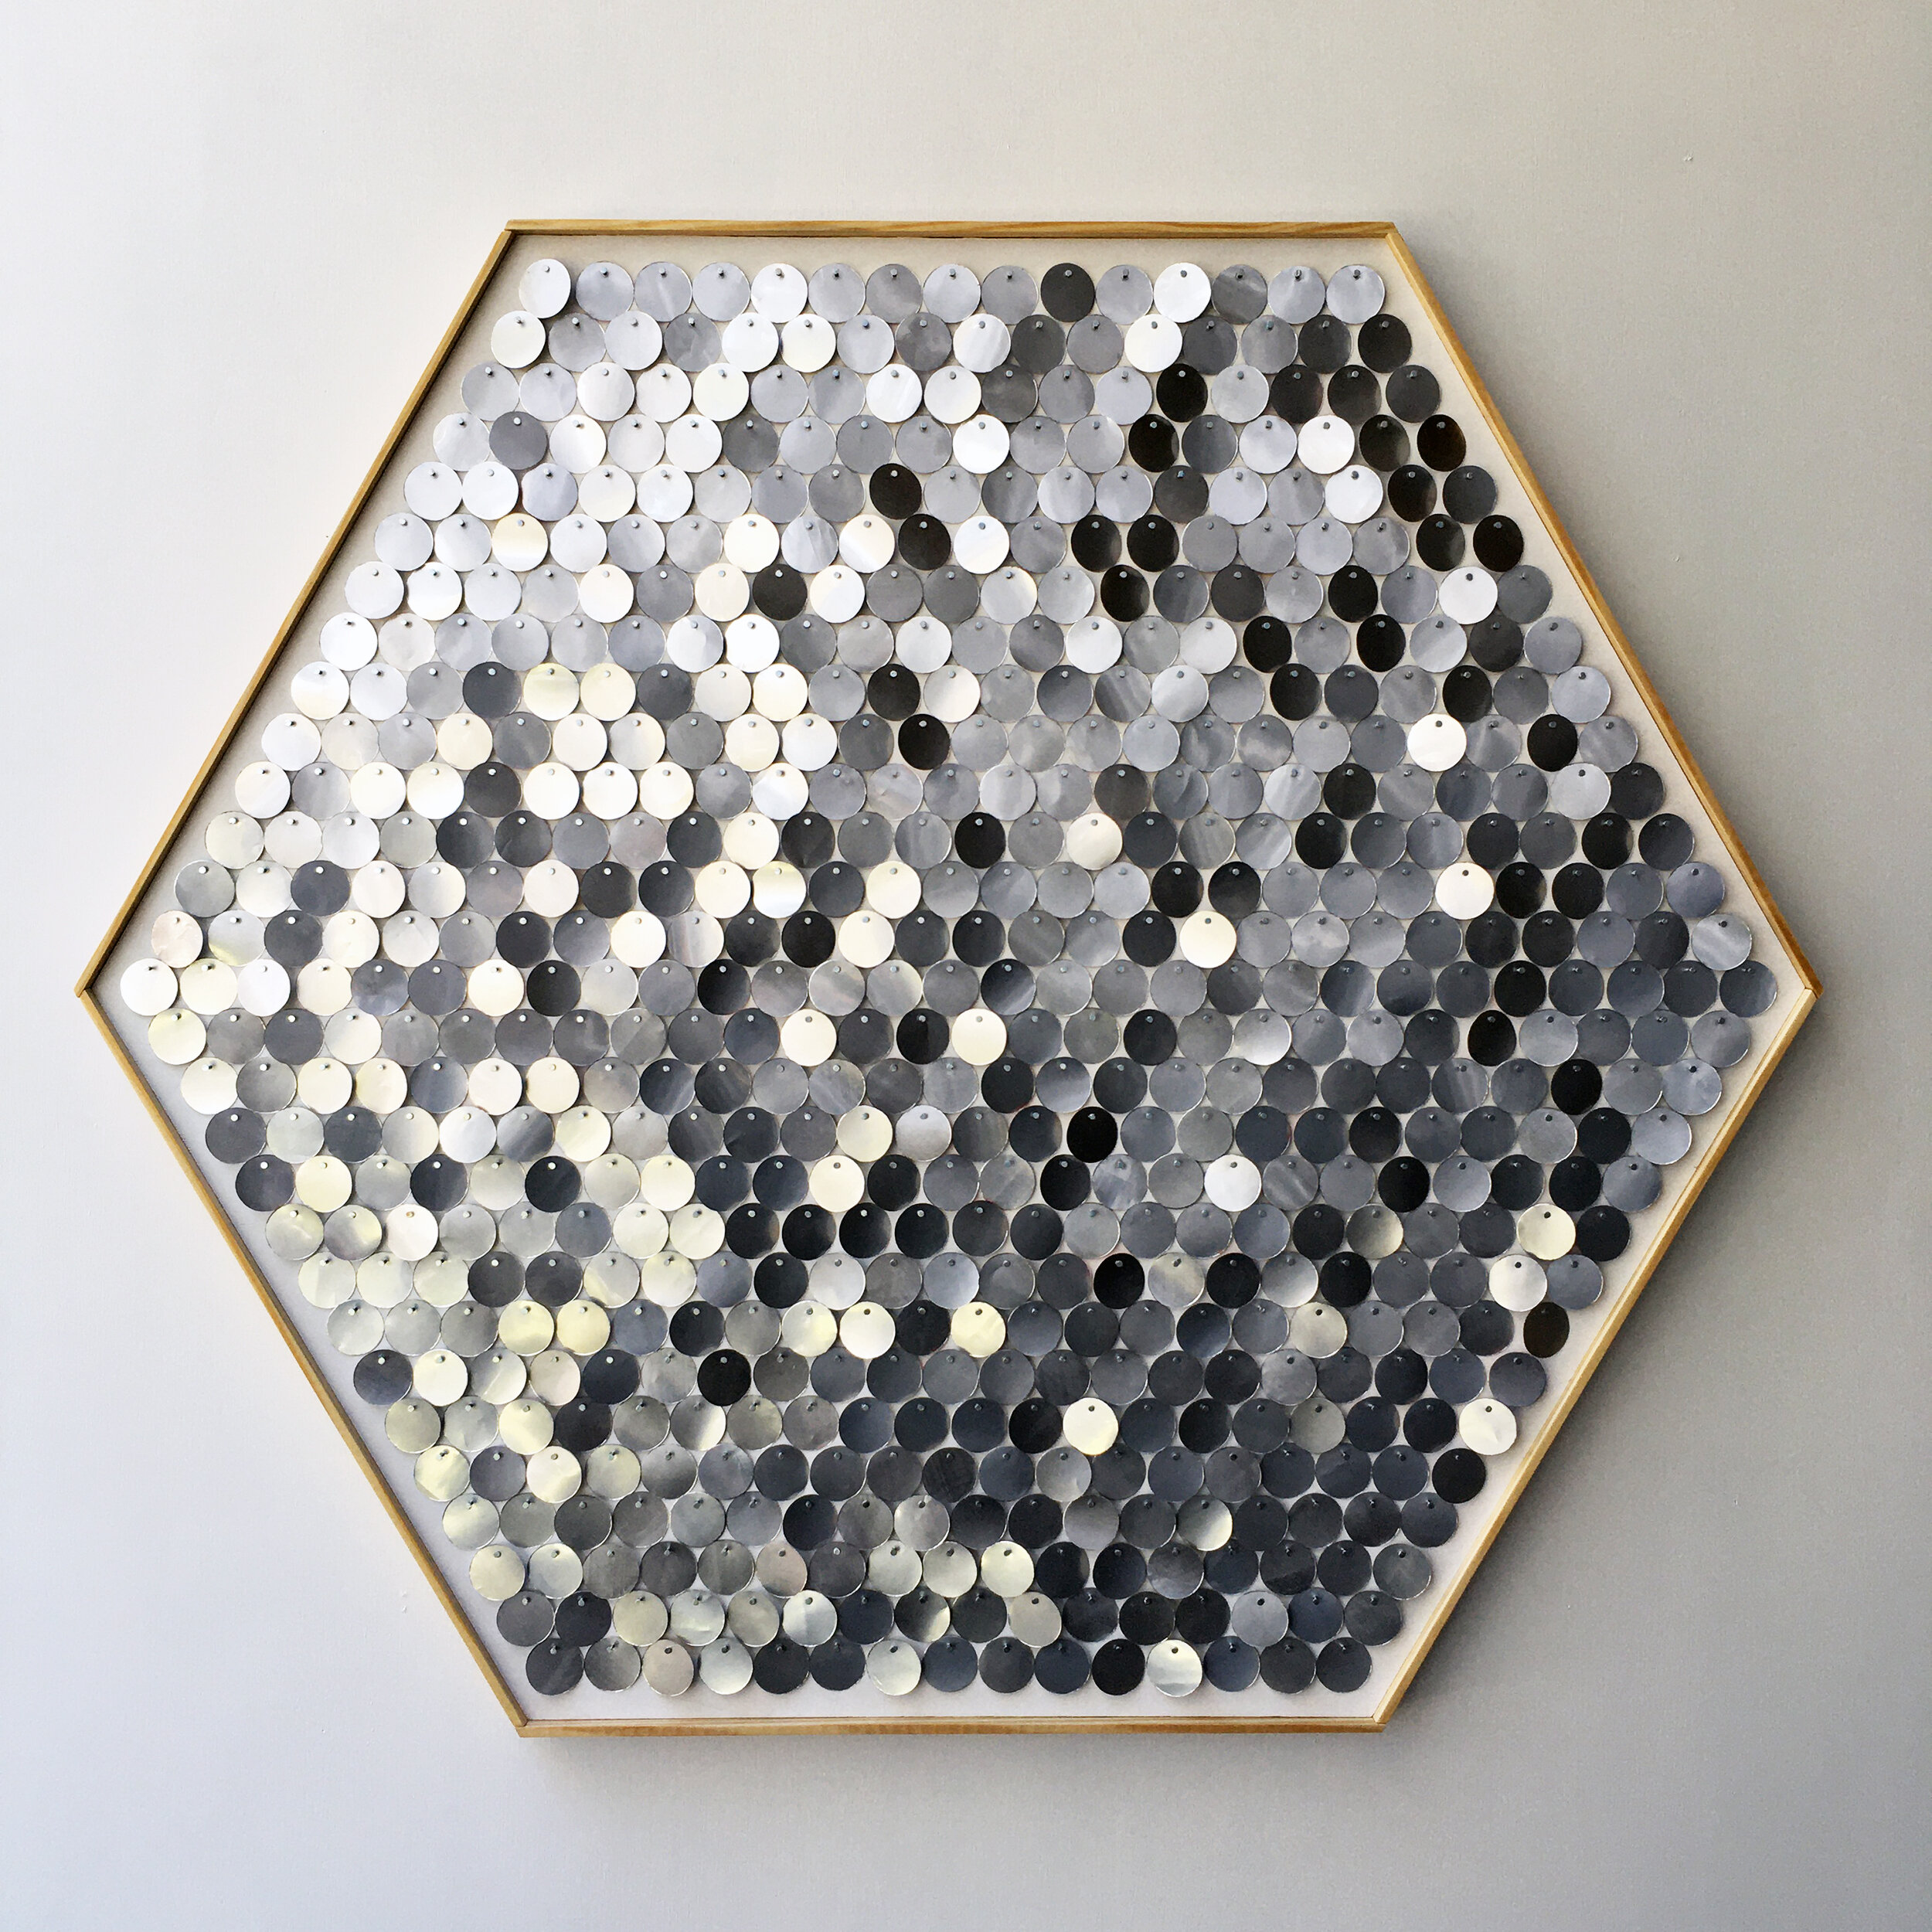 Hannah & Nemo's Upcycled Moving Mosaic Hexagons -   Created as an homage to nature, evocative of honeycombs and snowflakes, the moving discs change color throughout the day or season, reflecting their surroundings in soothing shades of grey-blue.